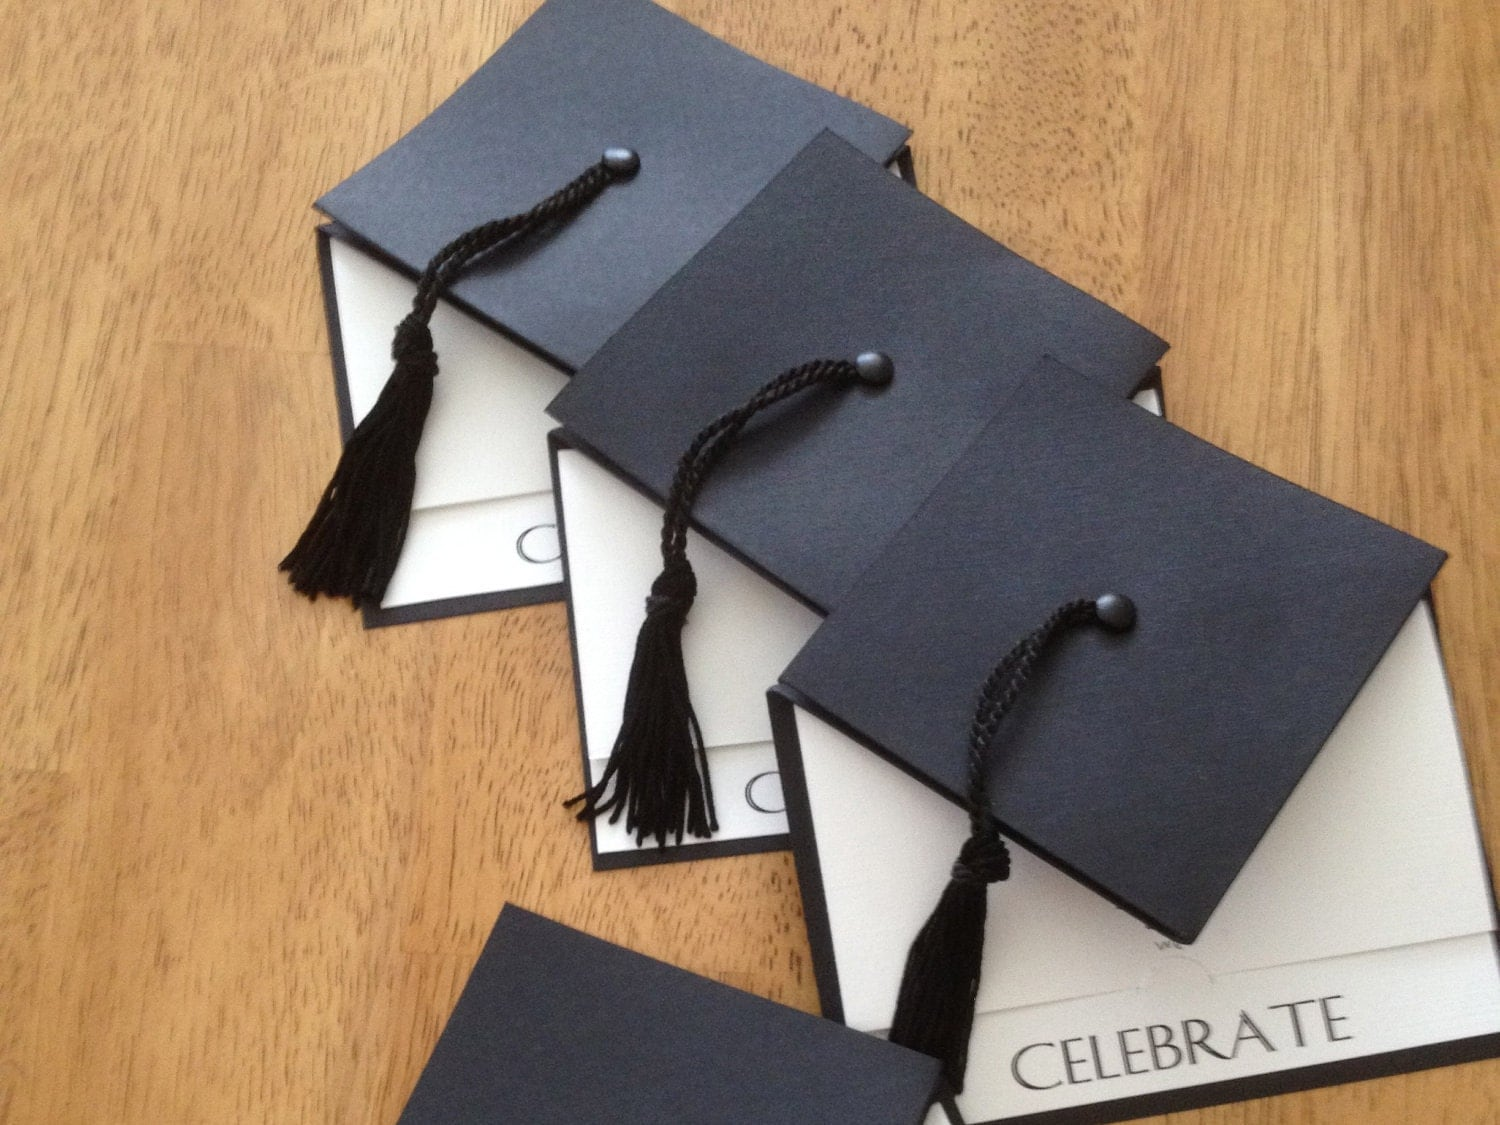 Etsy Graduation Invitations is one of our best ideas you might choose for invitation design